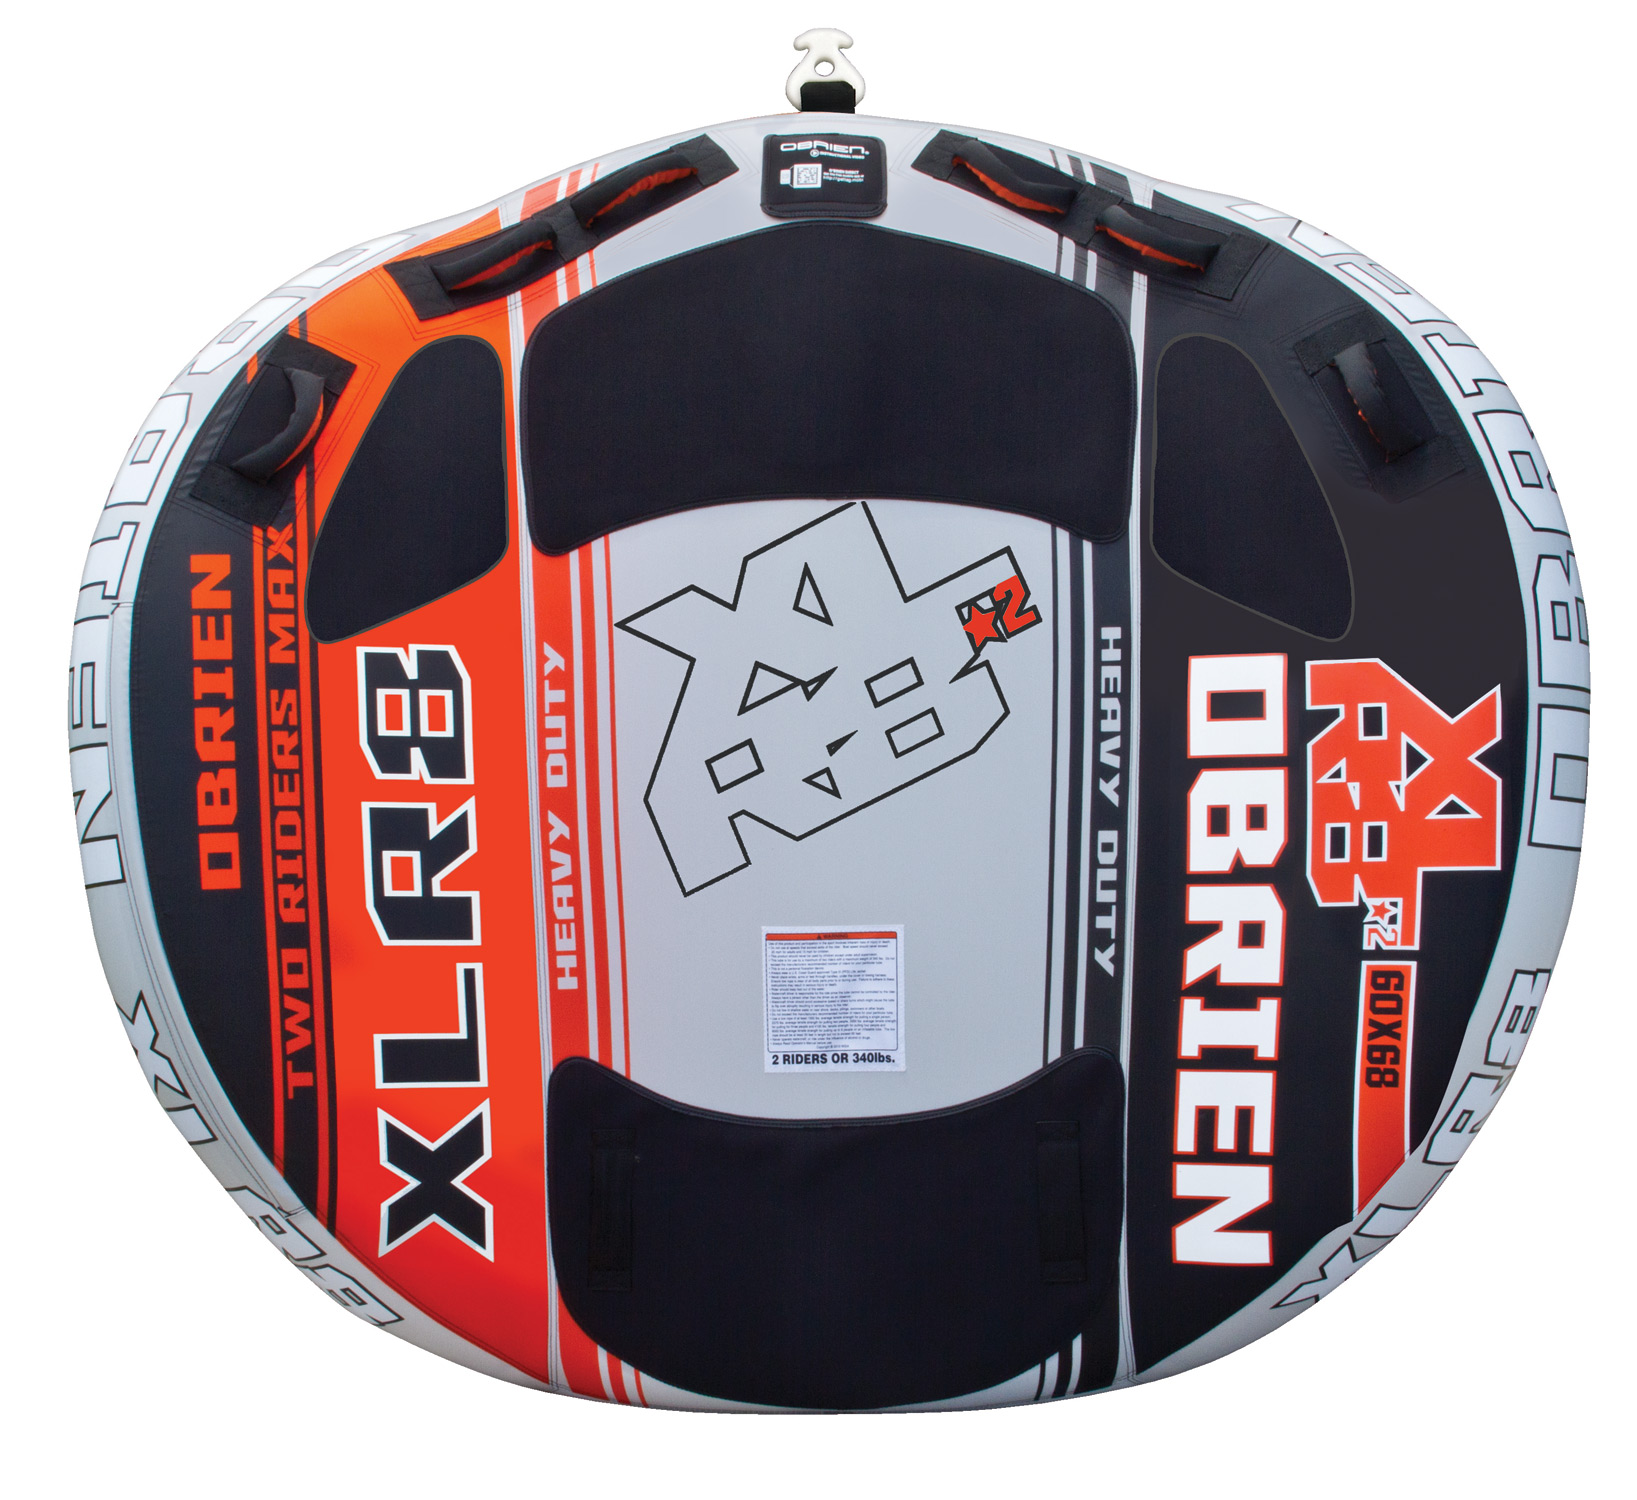 "Key Features of the O'Brien XLR8 2 Tube: 60""X68"" Up To 2 Riders 30 Gauge Pvc Fully Covered 840/420 D Nylon 6 Handles W/ Eva Knuckle Guards 3 Eva Pads 1 Quick Connect Tow Hook 1 Boston Valve One Year Limited Warranty - $214.95"